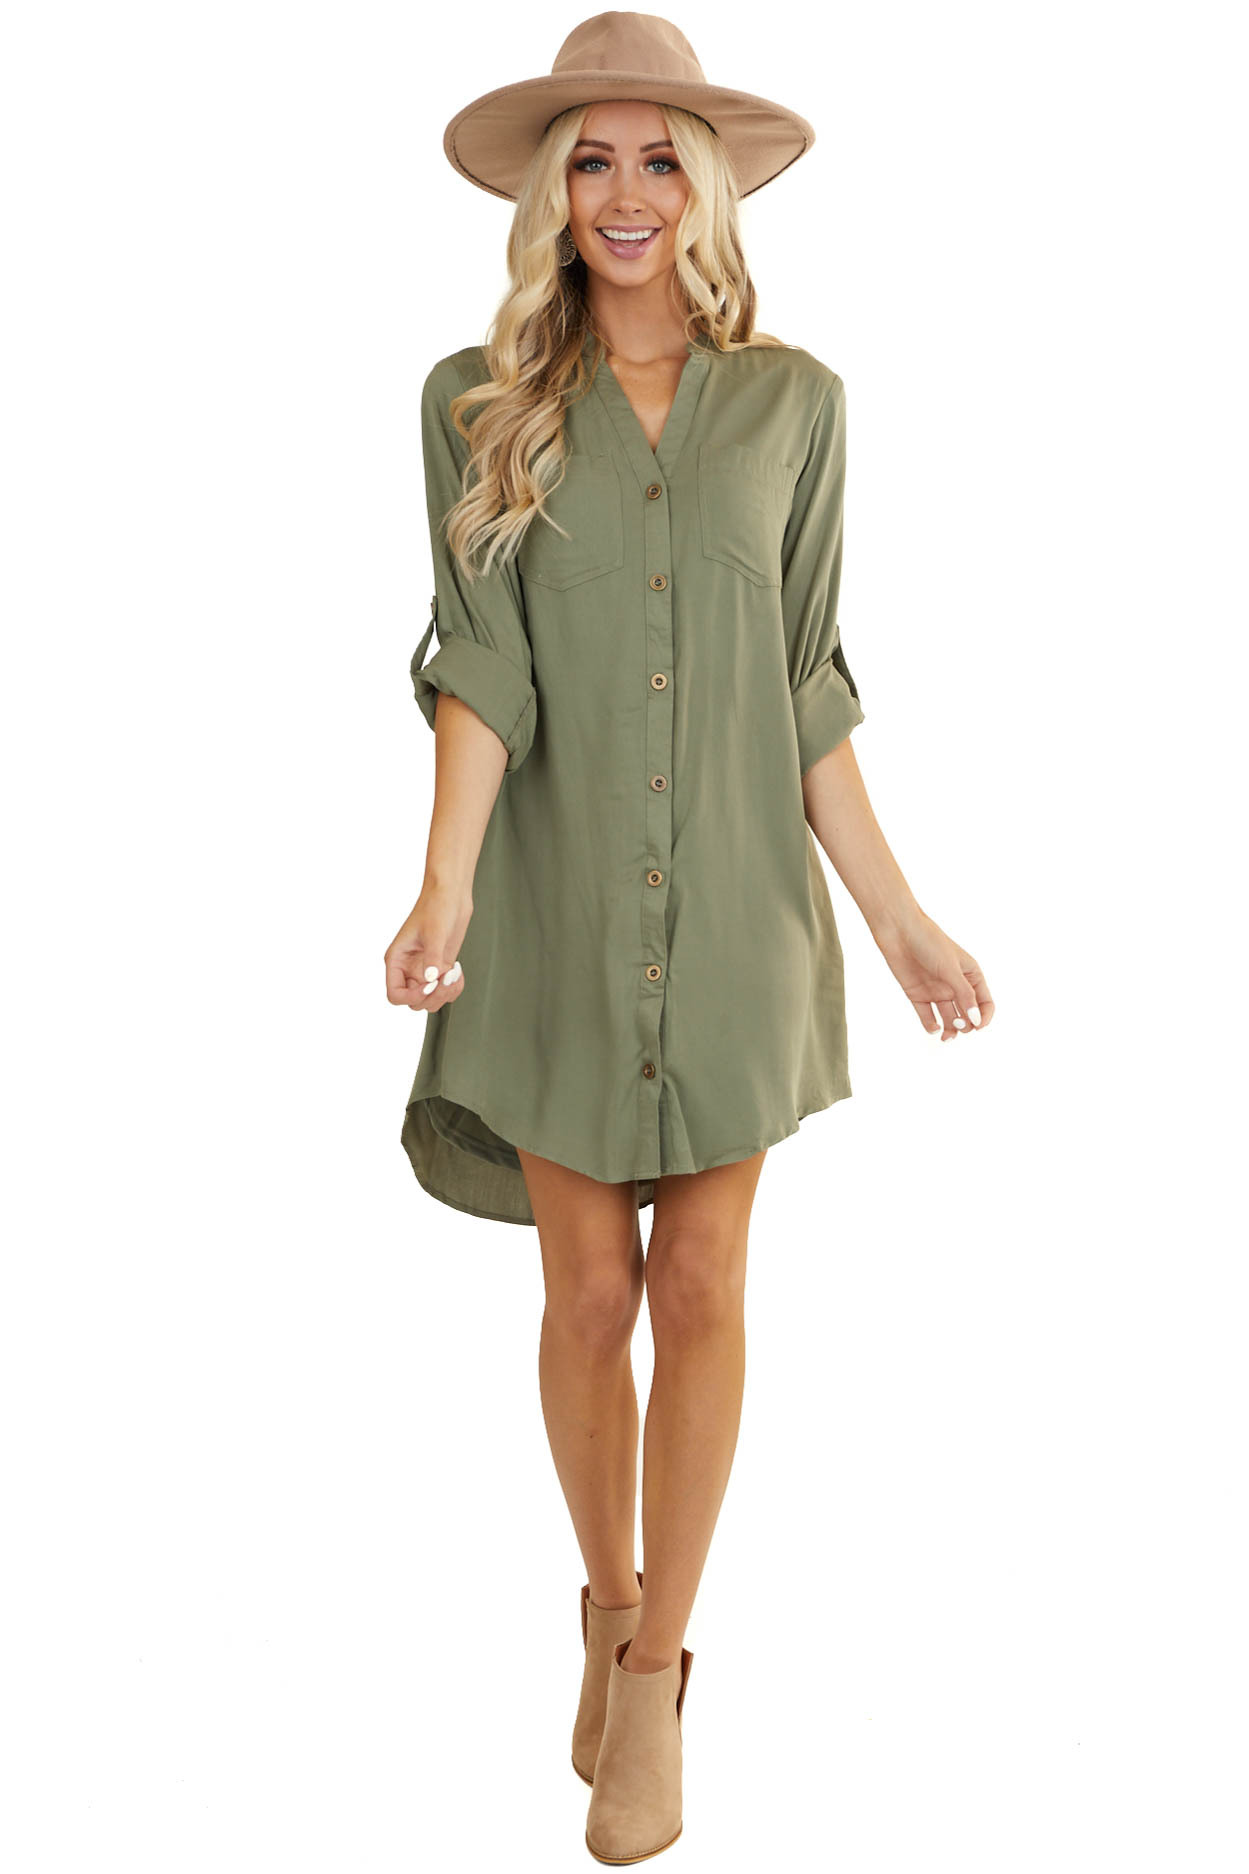 Olive Button Down Collared Short Dress with Pockets